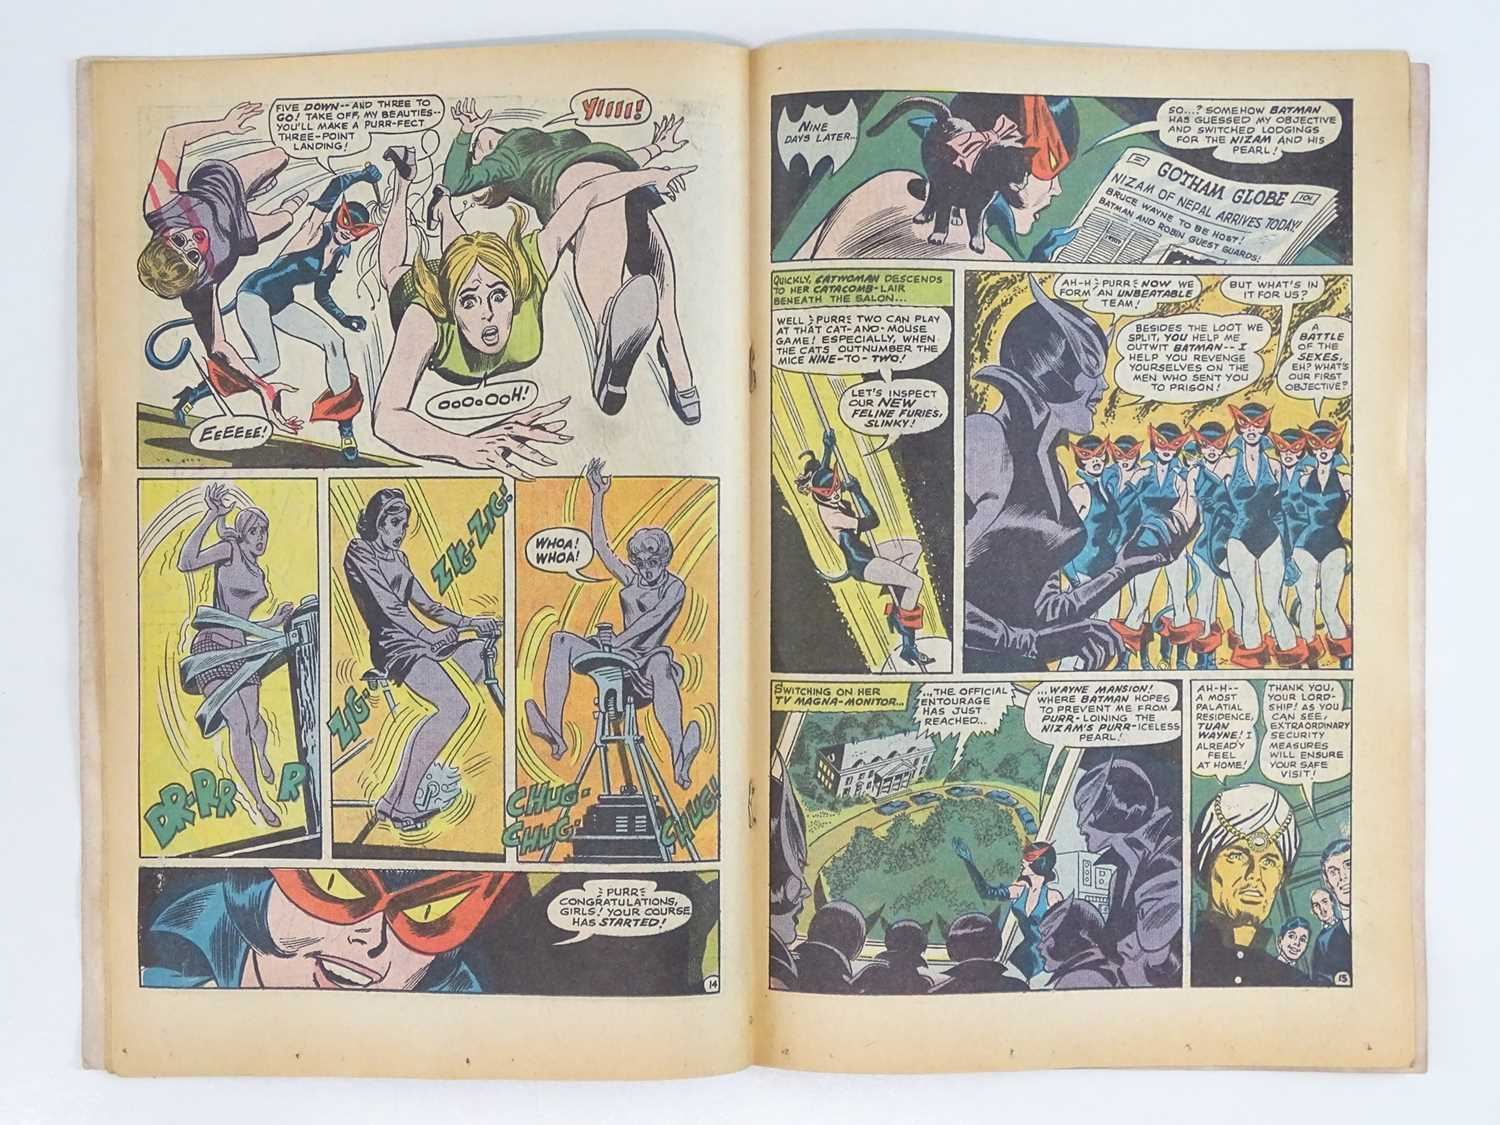 BATMAN #210 - (1969 - DC - UK Cover Price) - First appearance of the Feline Furies which includes - Image 5 of 9